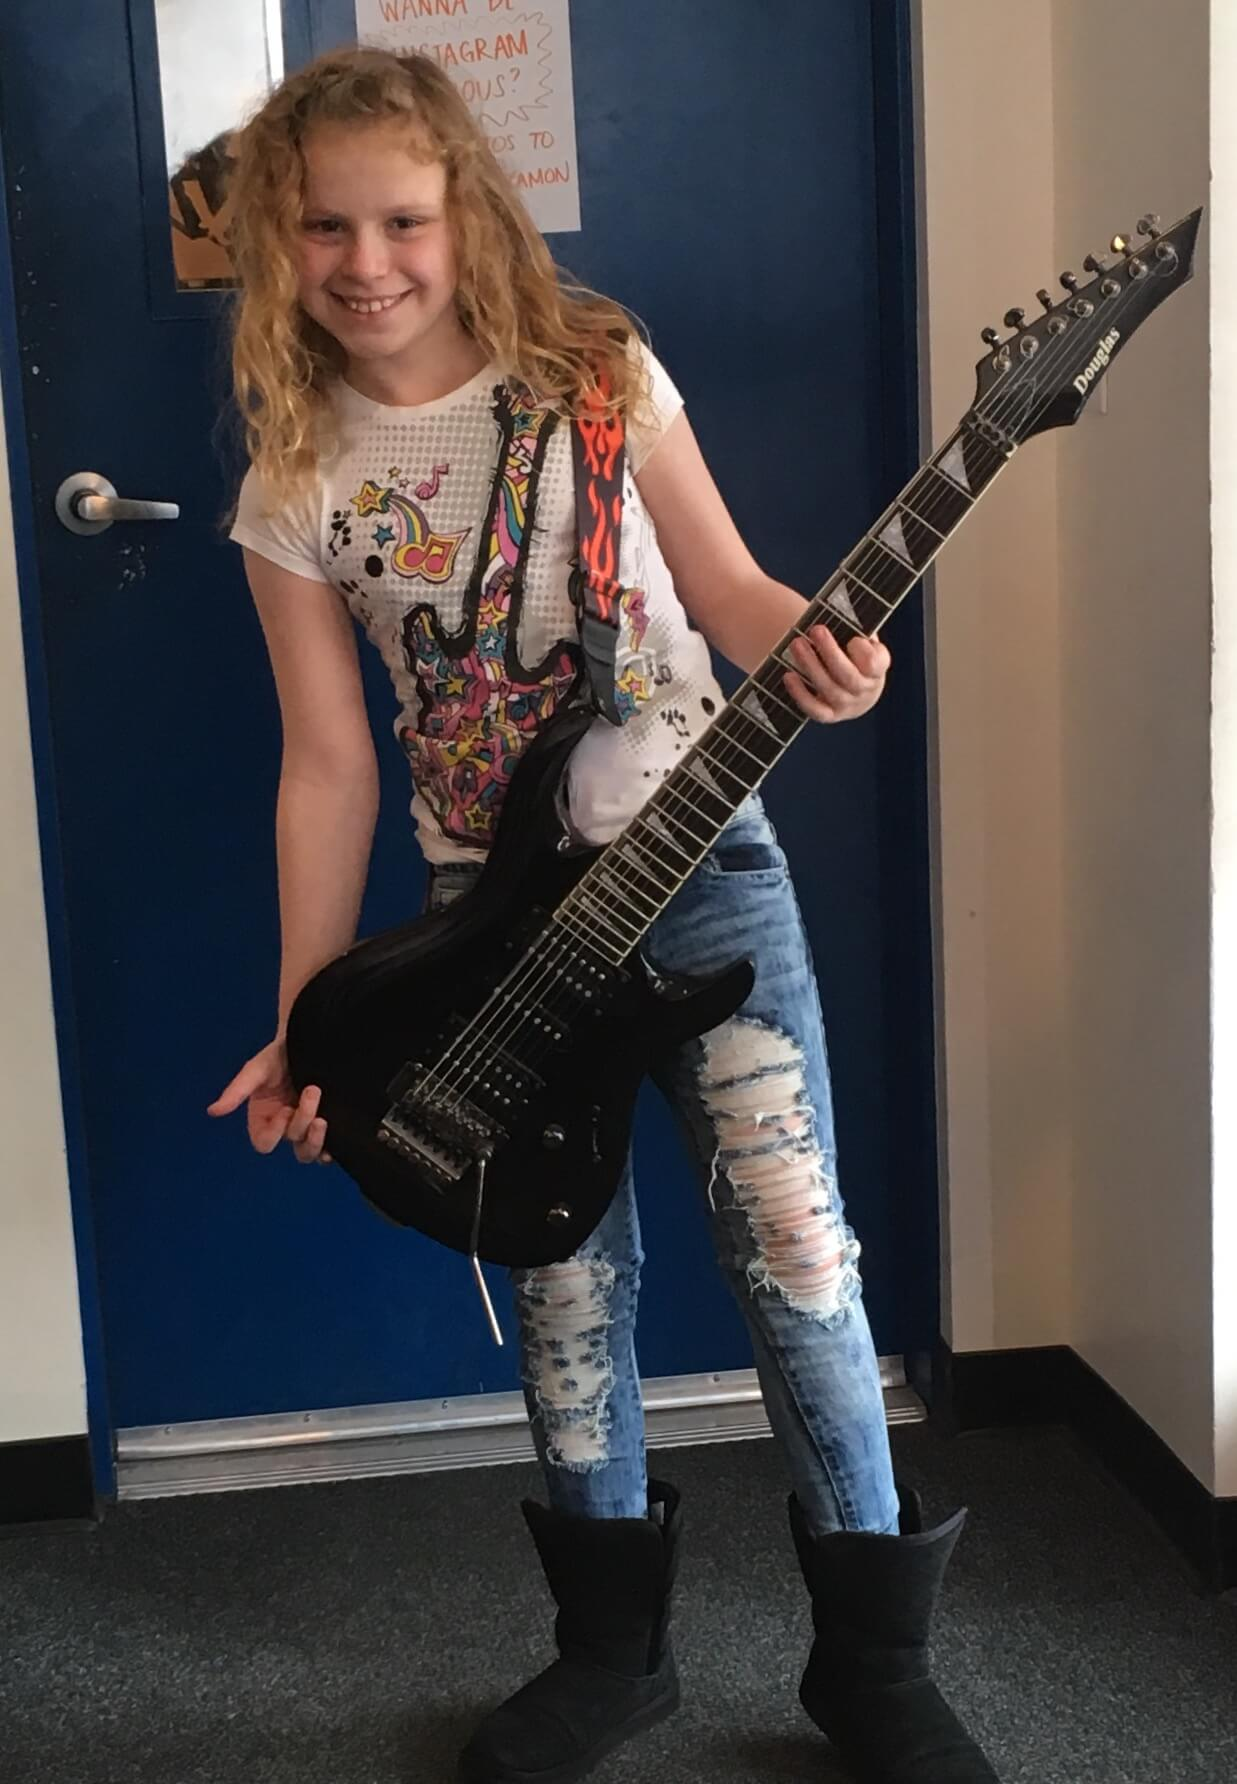 Never too young to rock out.